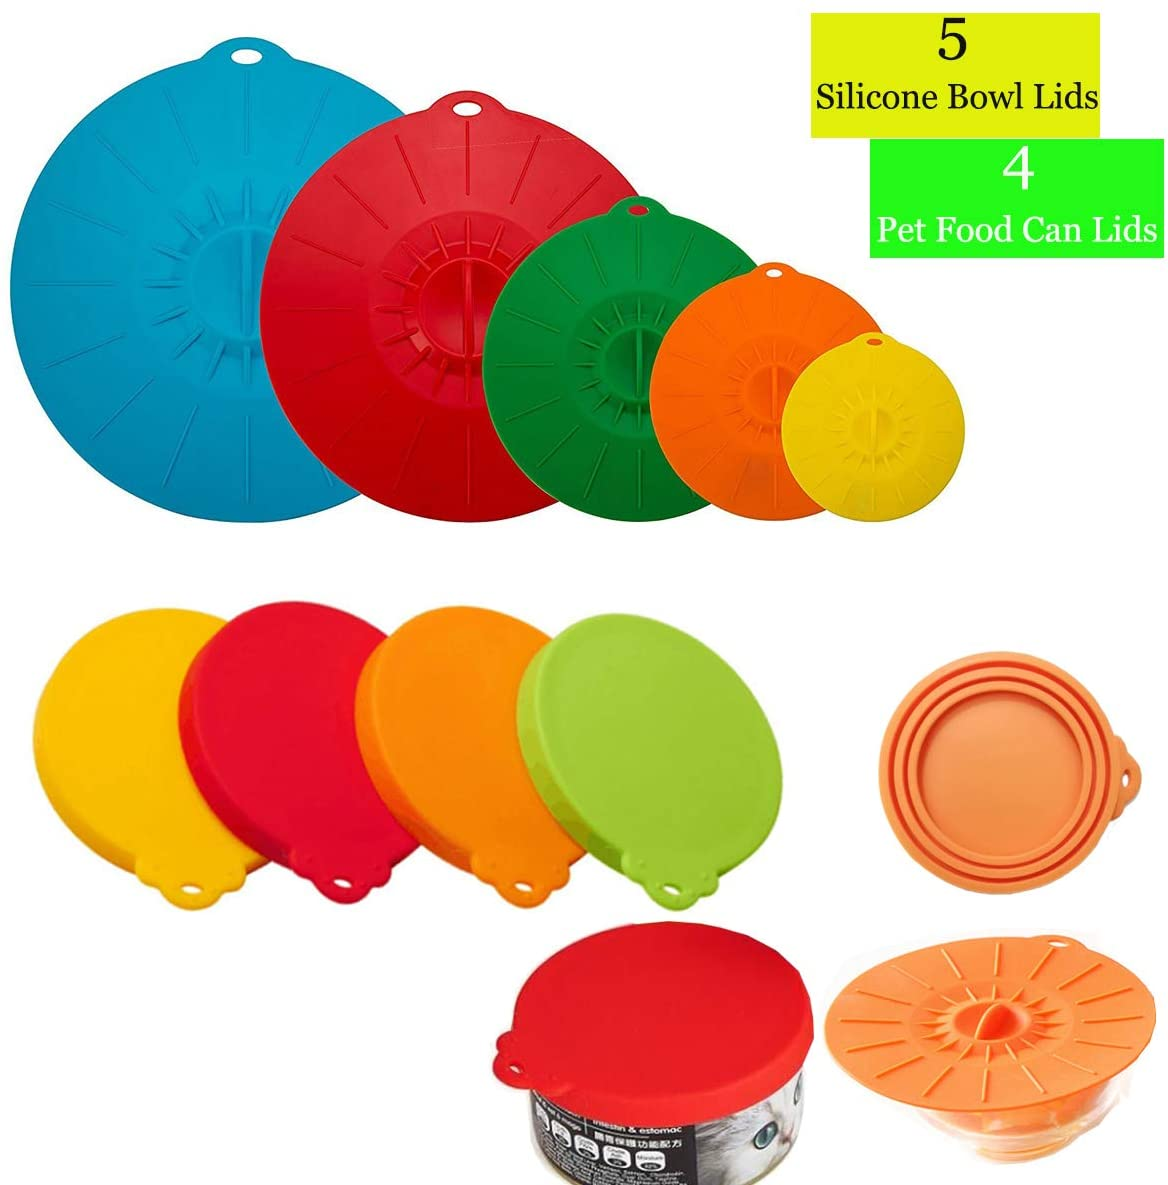 5 silicone food covers heat resistant microwave cover pan plate mugs pot bowls lids with 4pcs silicone pets dogs cats food can tops covers cup dishes